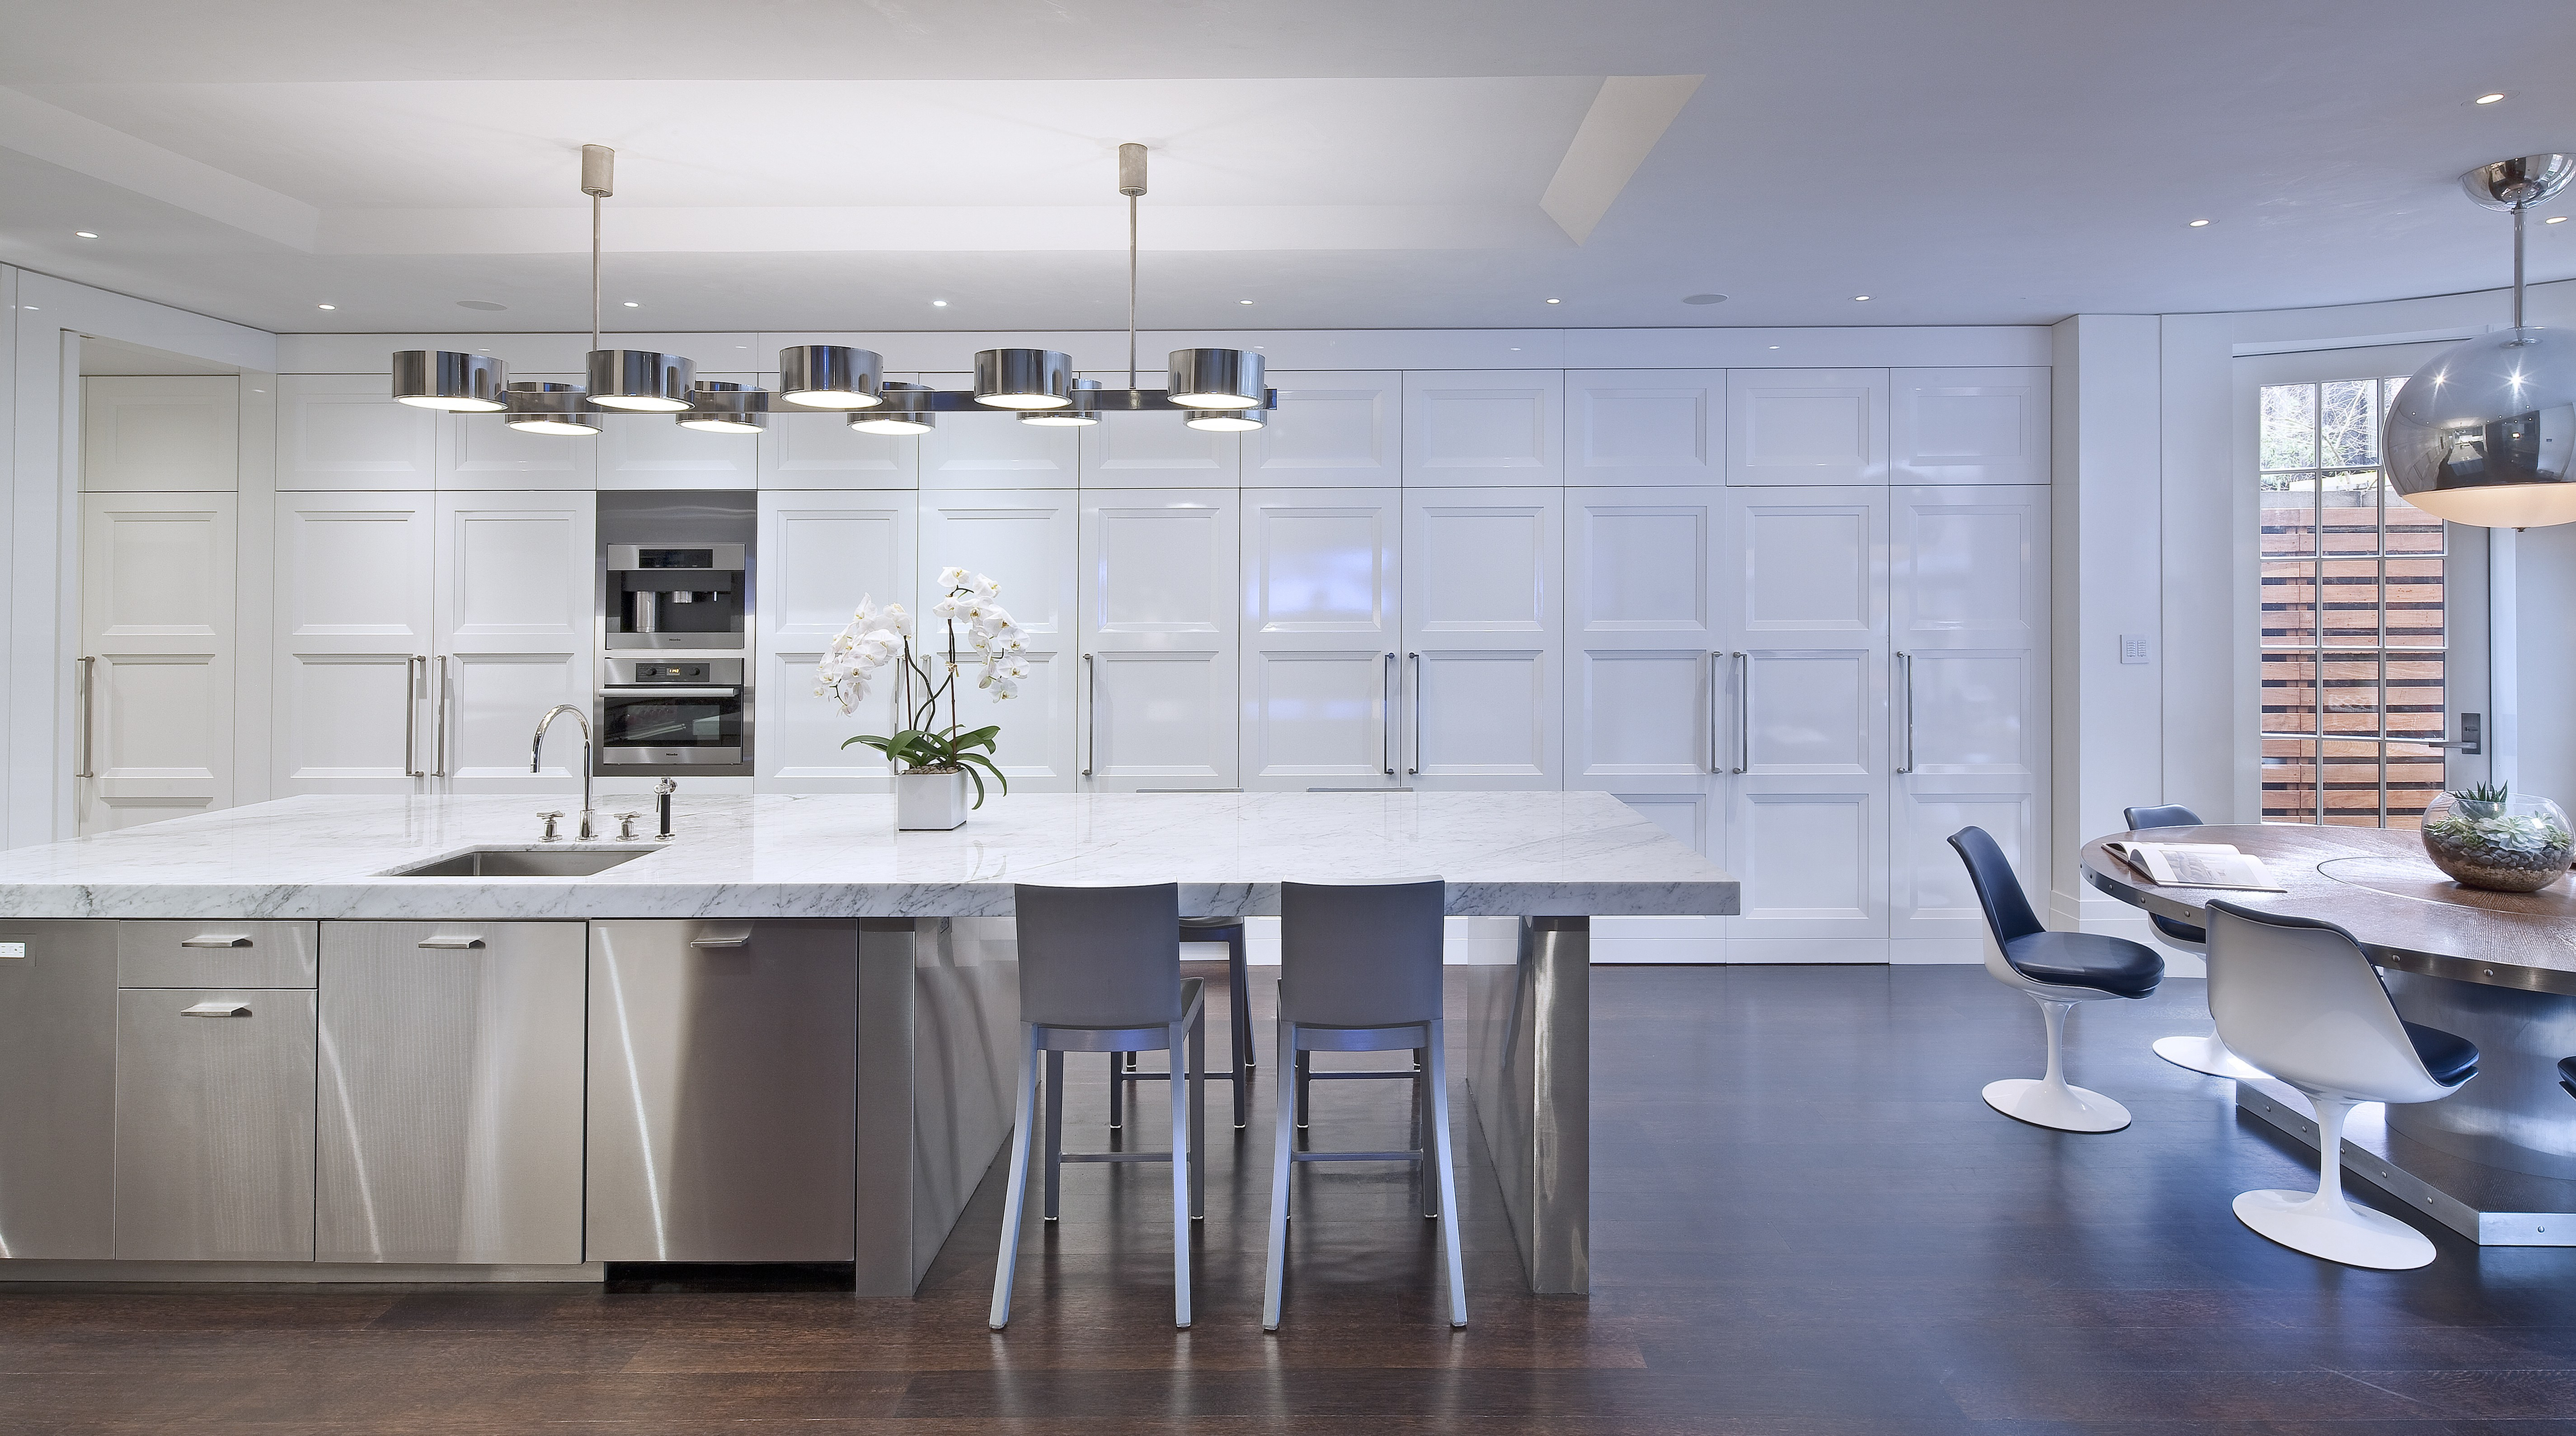 Best ideas about Kitchen Decor Ideas Photos . Save or Pin 6 Clever Kitchen Design Ideas from St Charles of New York Now.